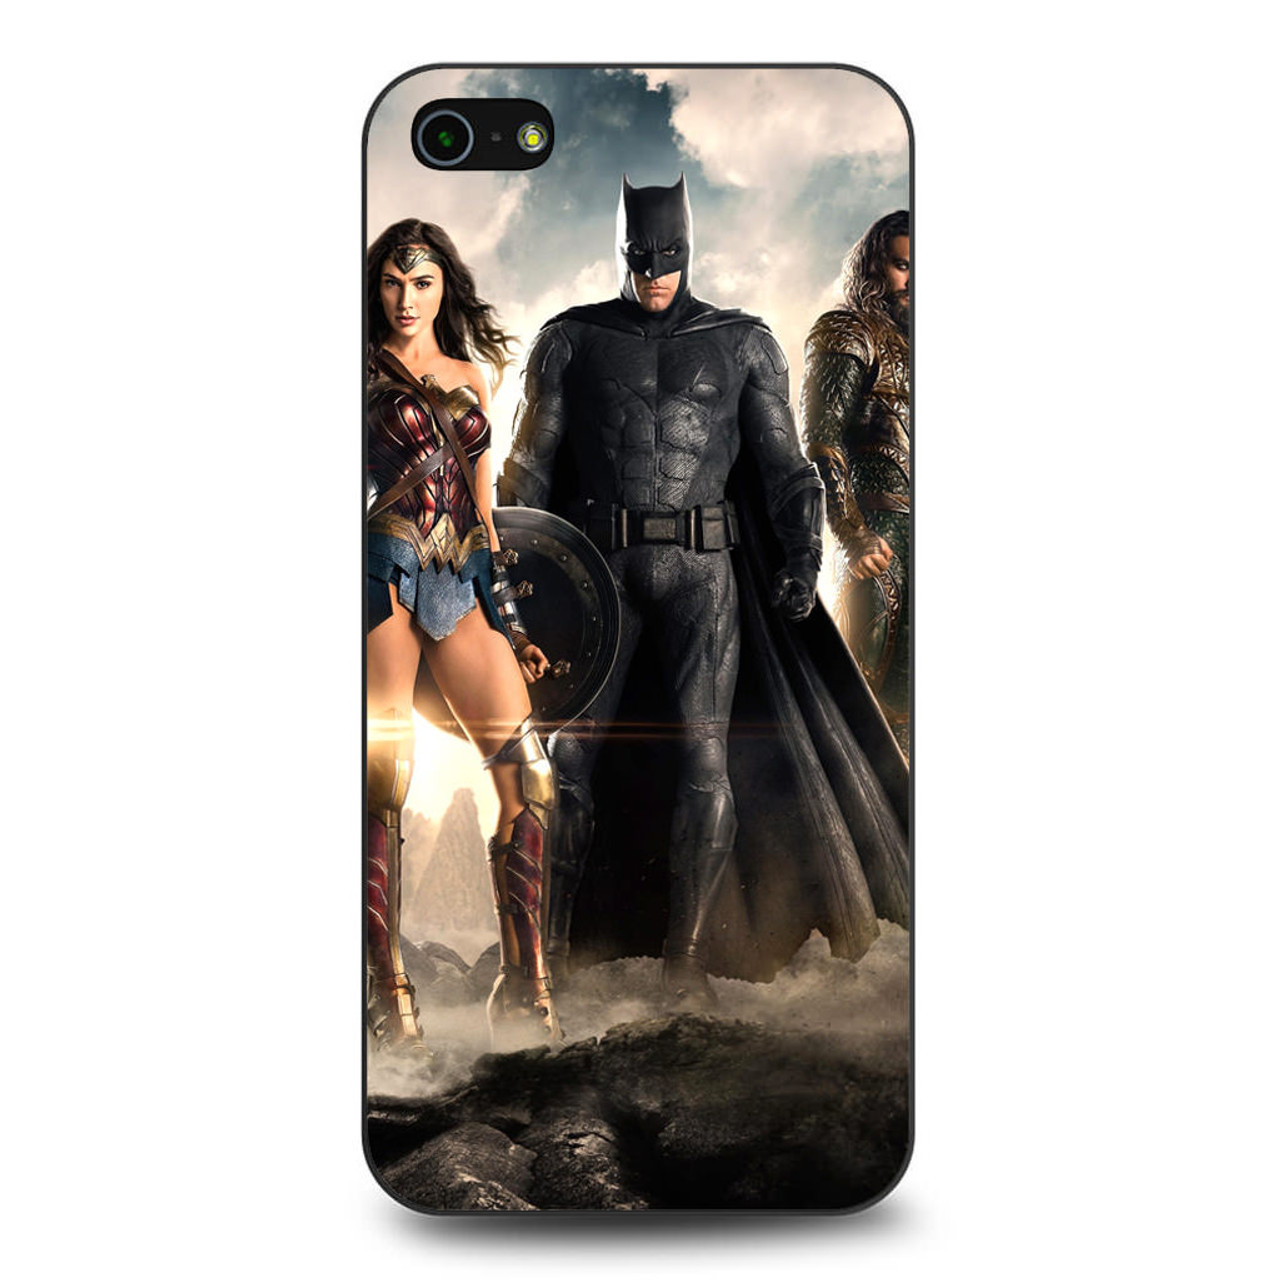 brand new 28e36 b0203 Justice League 2017 iPhone 5/5S/SE Case